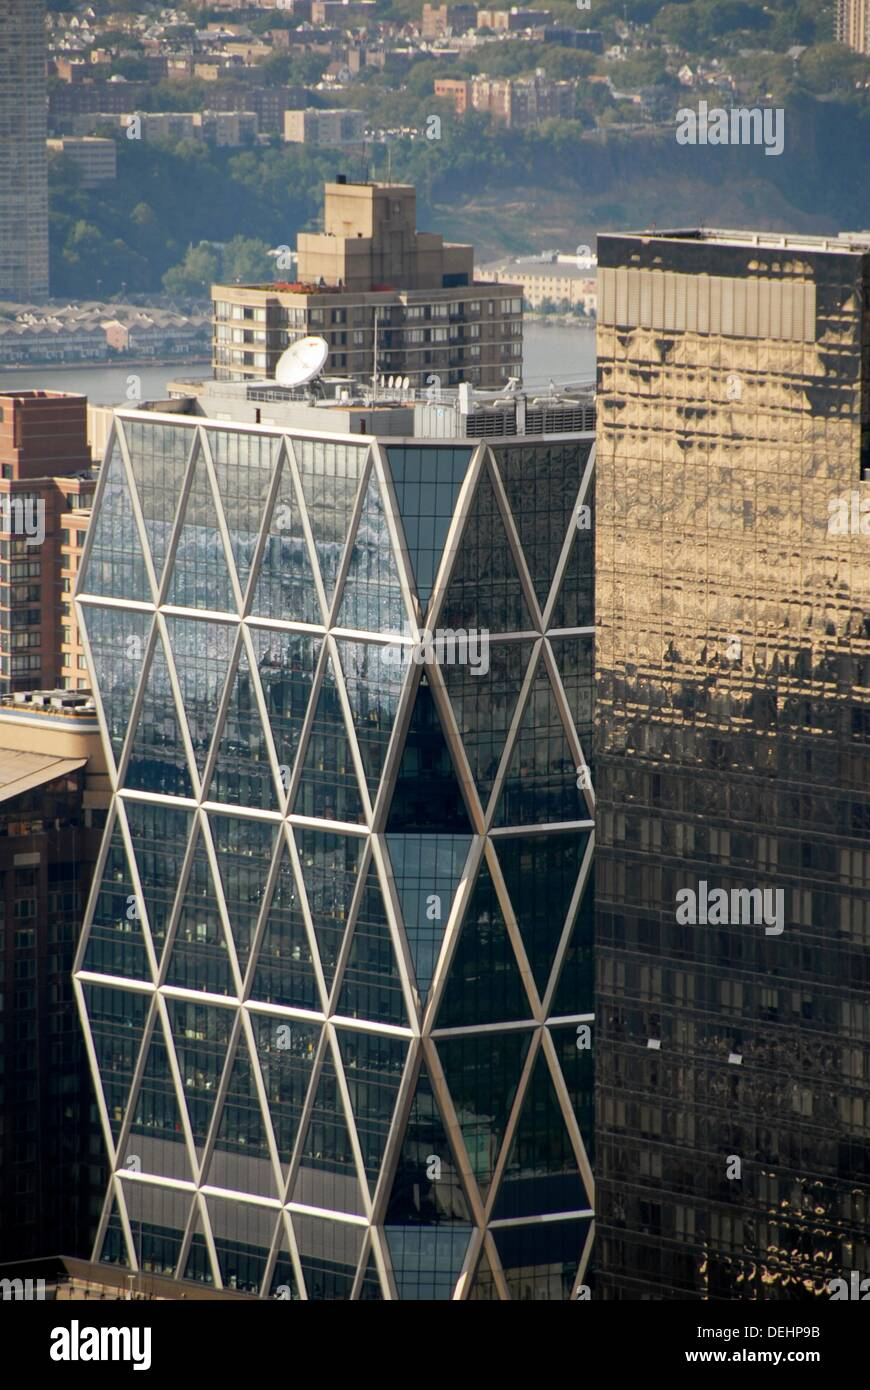 Aerial view of the Norman Foster's Hearst Tower, built on top of the 1928 Hearst building in 2006., Northwest Manhattan, New - Stock Image